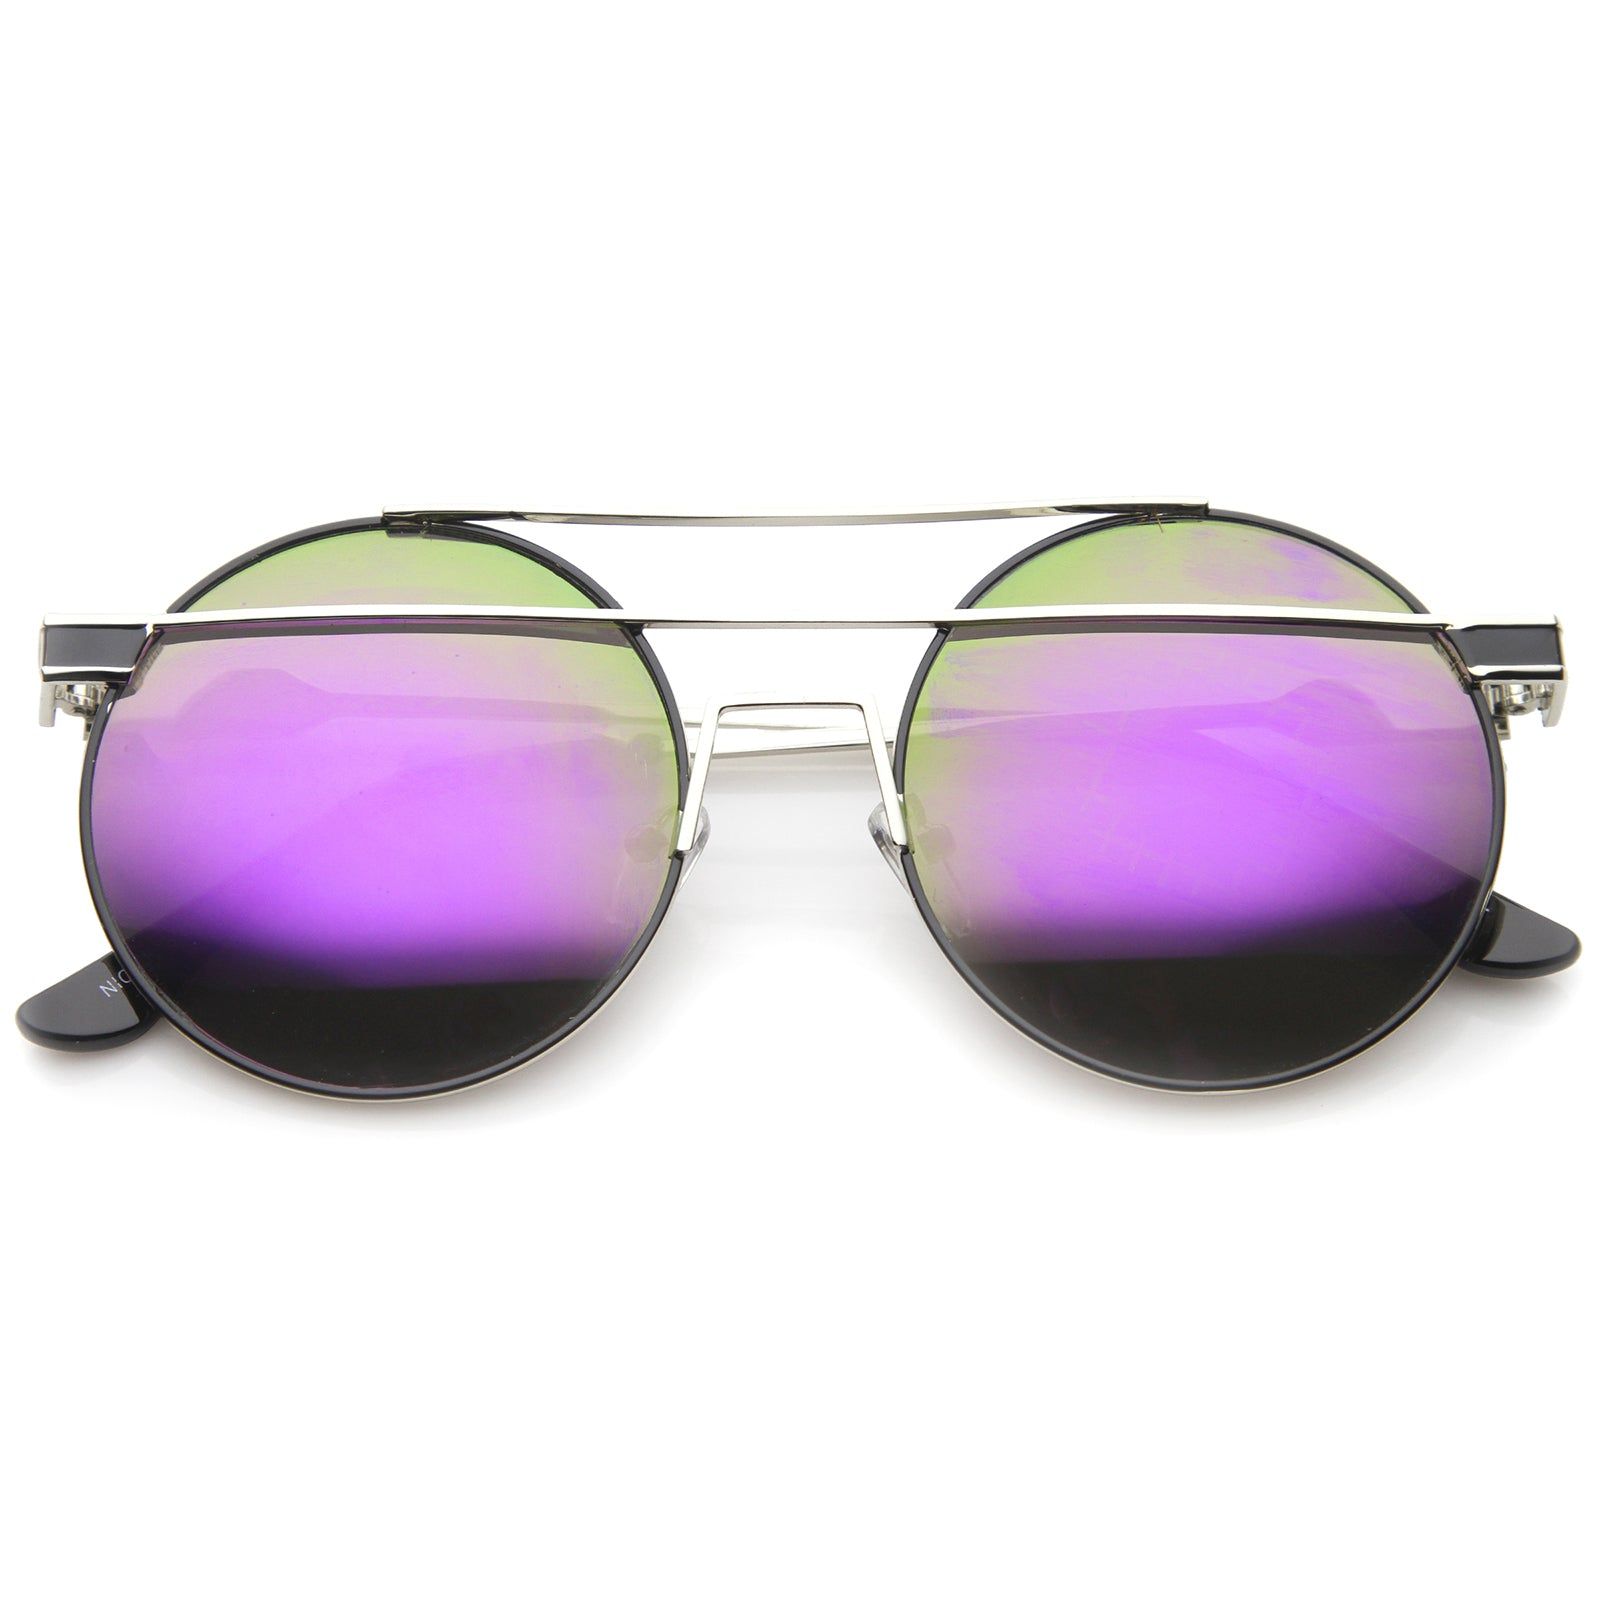 Modern Metal Frame Double Bridge Colored Mirror Lens Round Sunglasses 59mm - sunglass.la - 17